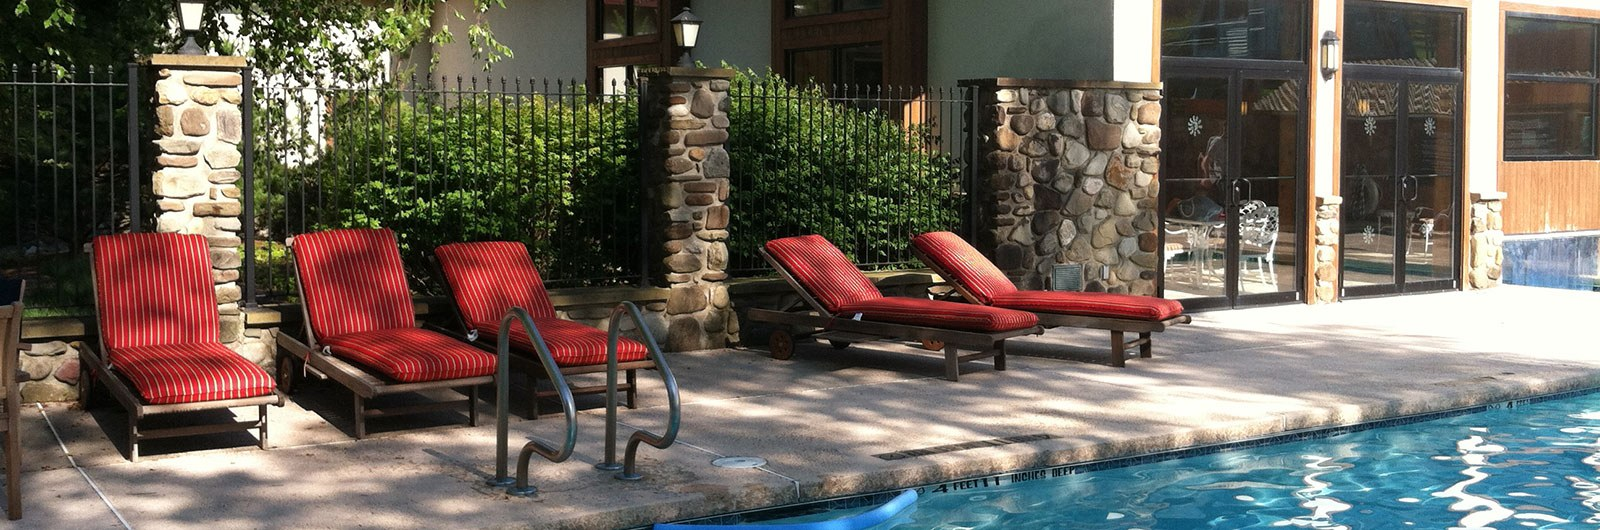 lounge chairs at the Inn pool in the summer